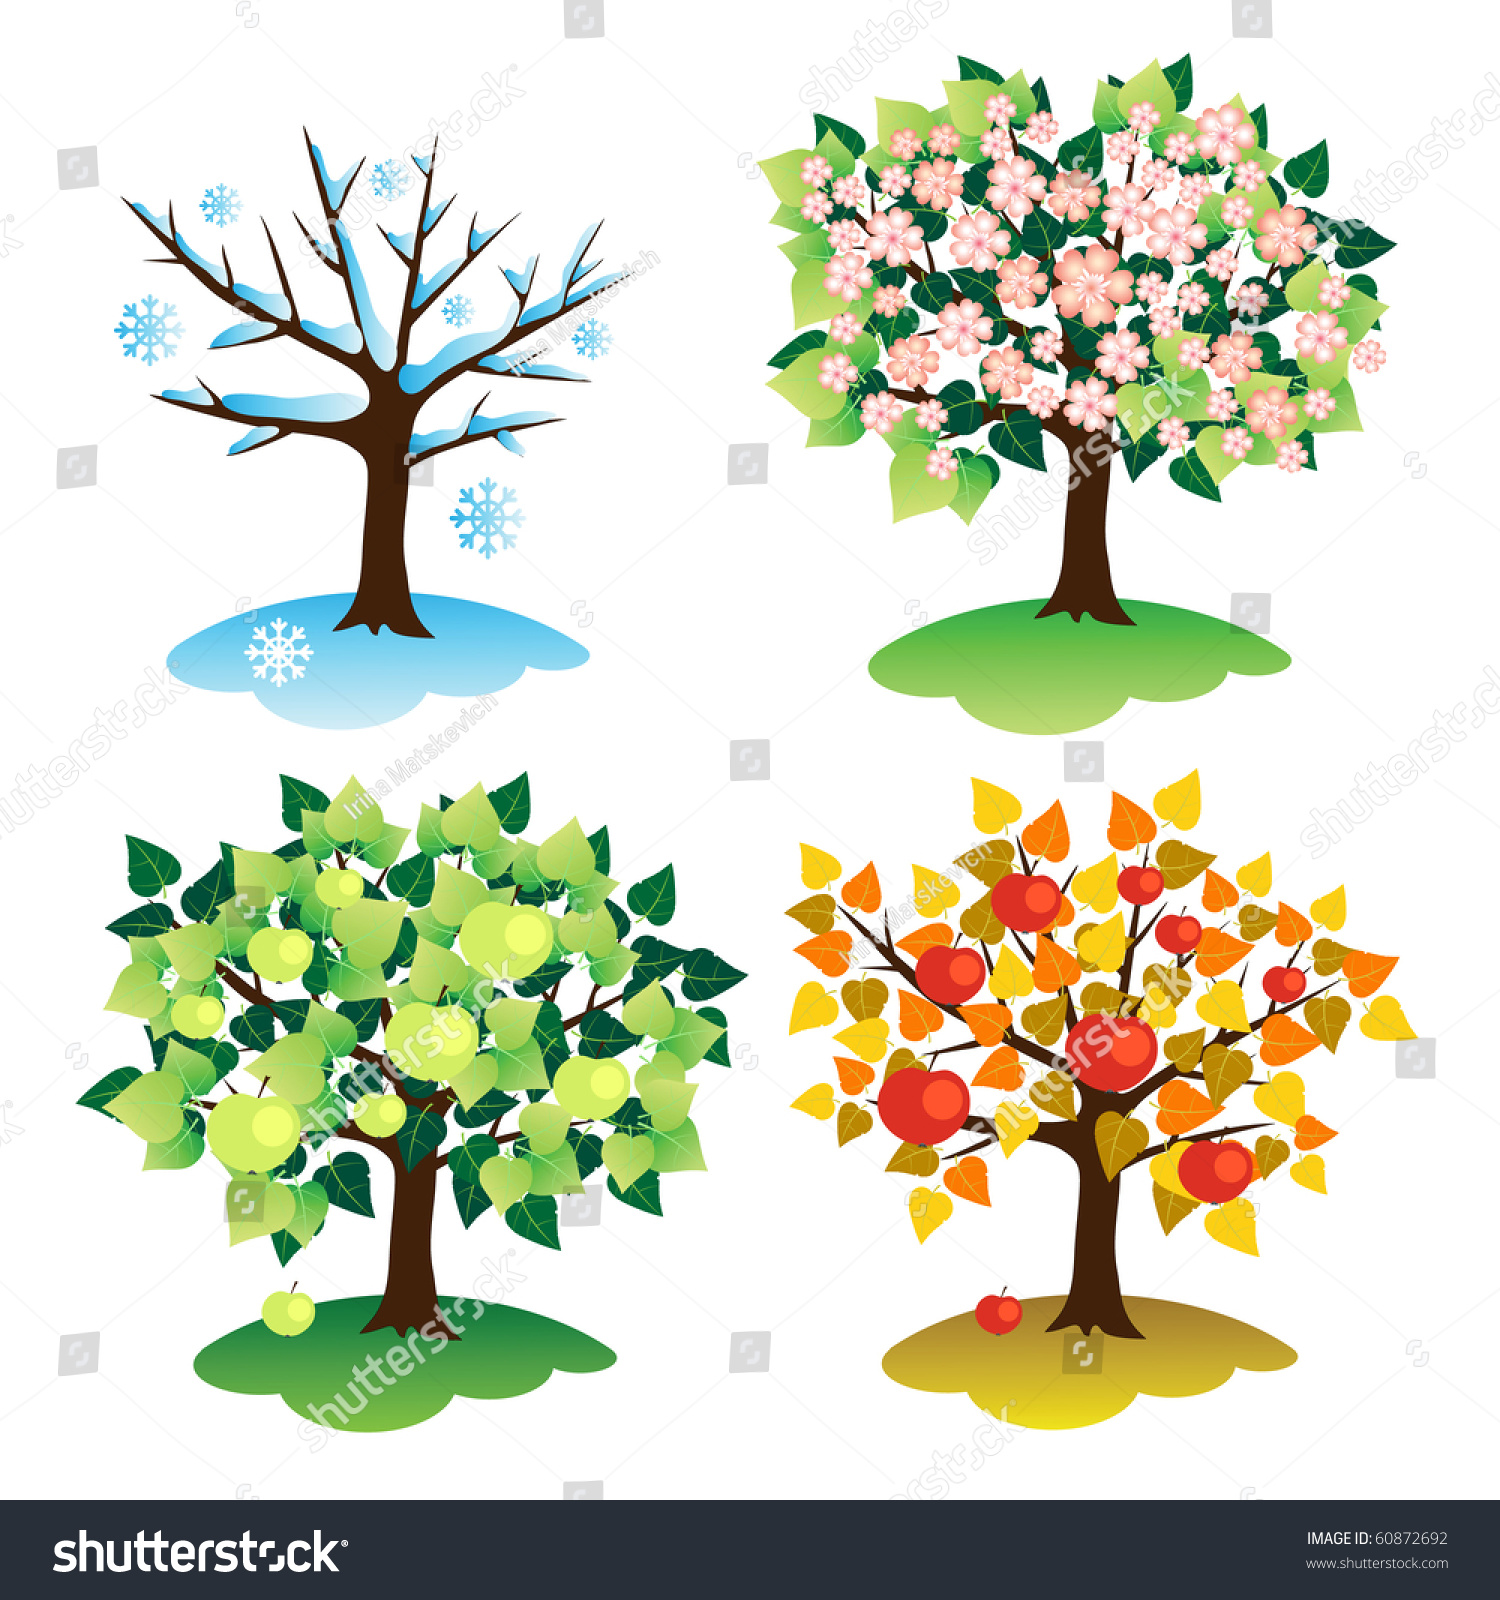 Pictures Of Apple Trees Through The Seasons